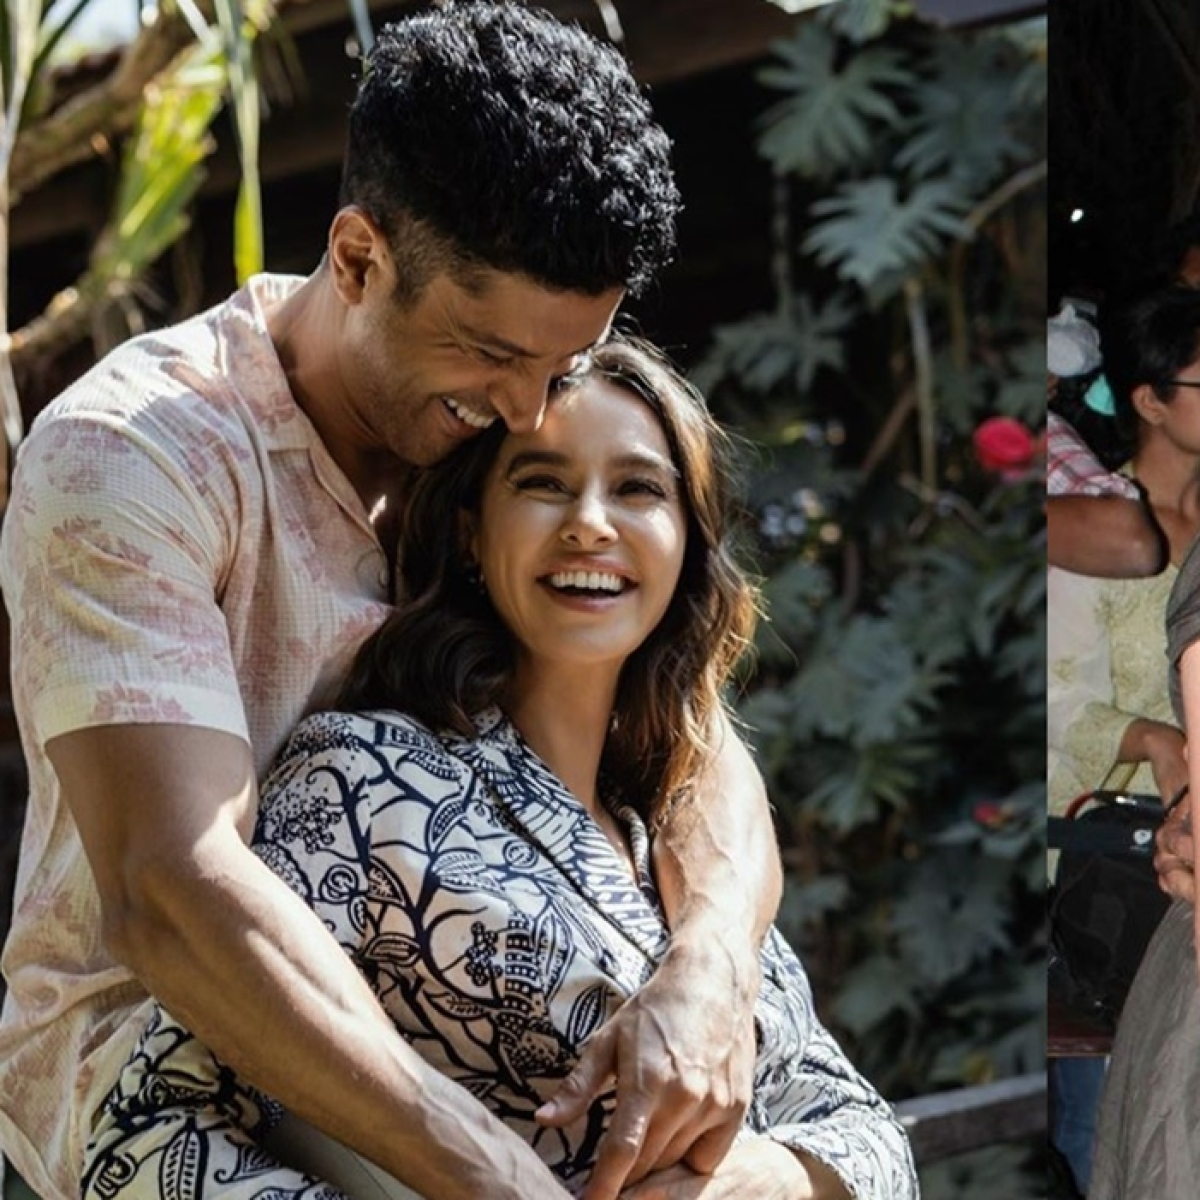 'You're just Farhan Akhtar's GF': Sushant's fans attack Shibani Dandekar for her comment on Ankita Lokhande